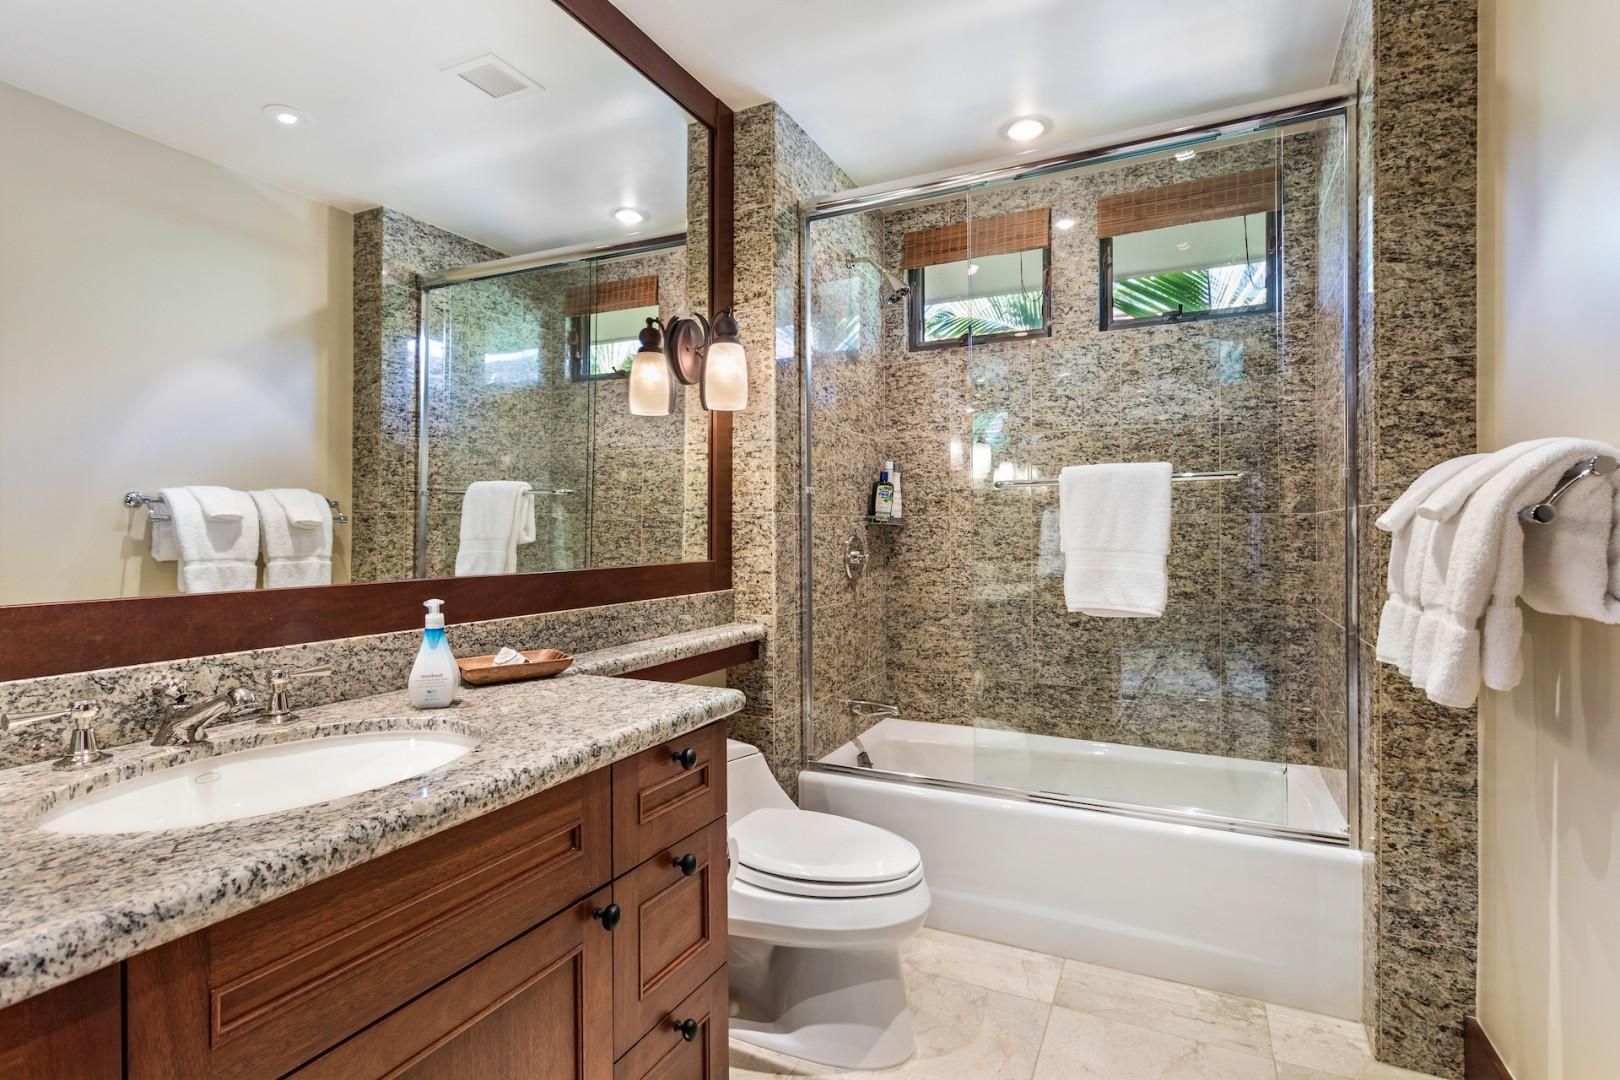 Second full bathroom, en suite, with elegant granite and shower/tub combo.